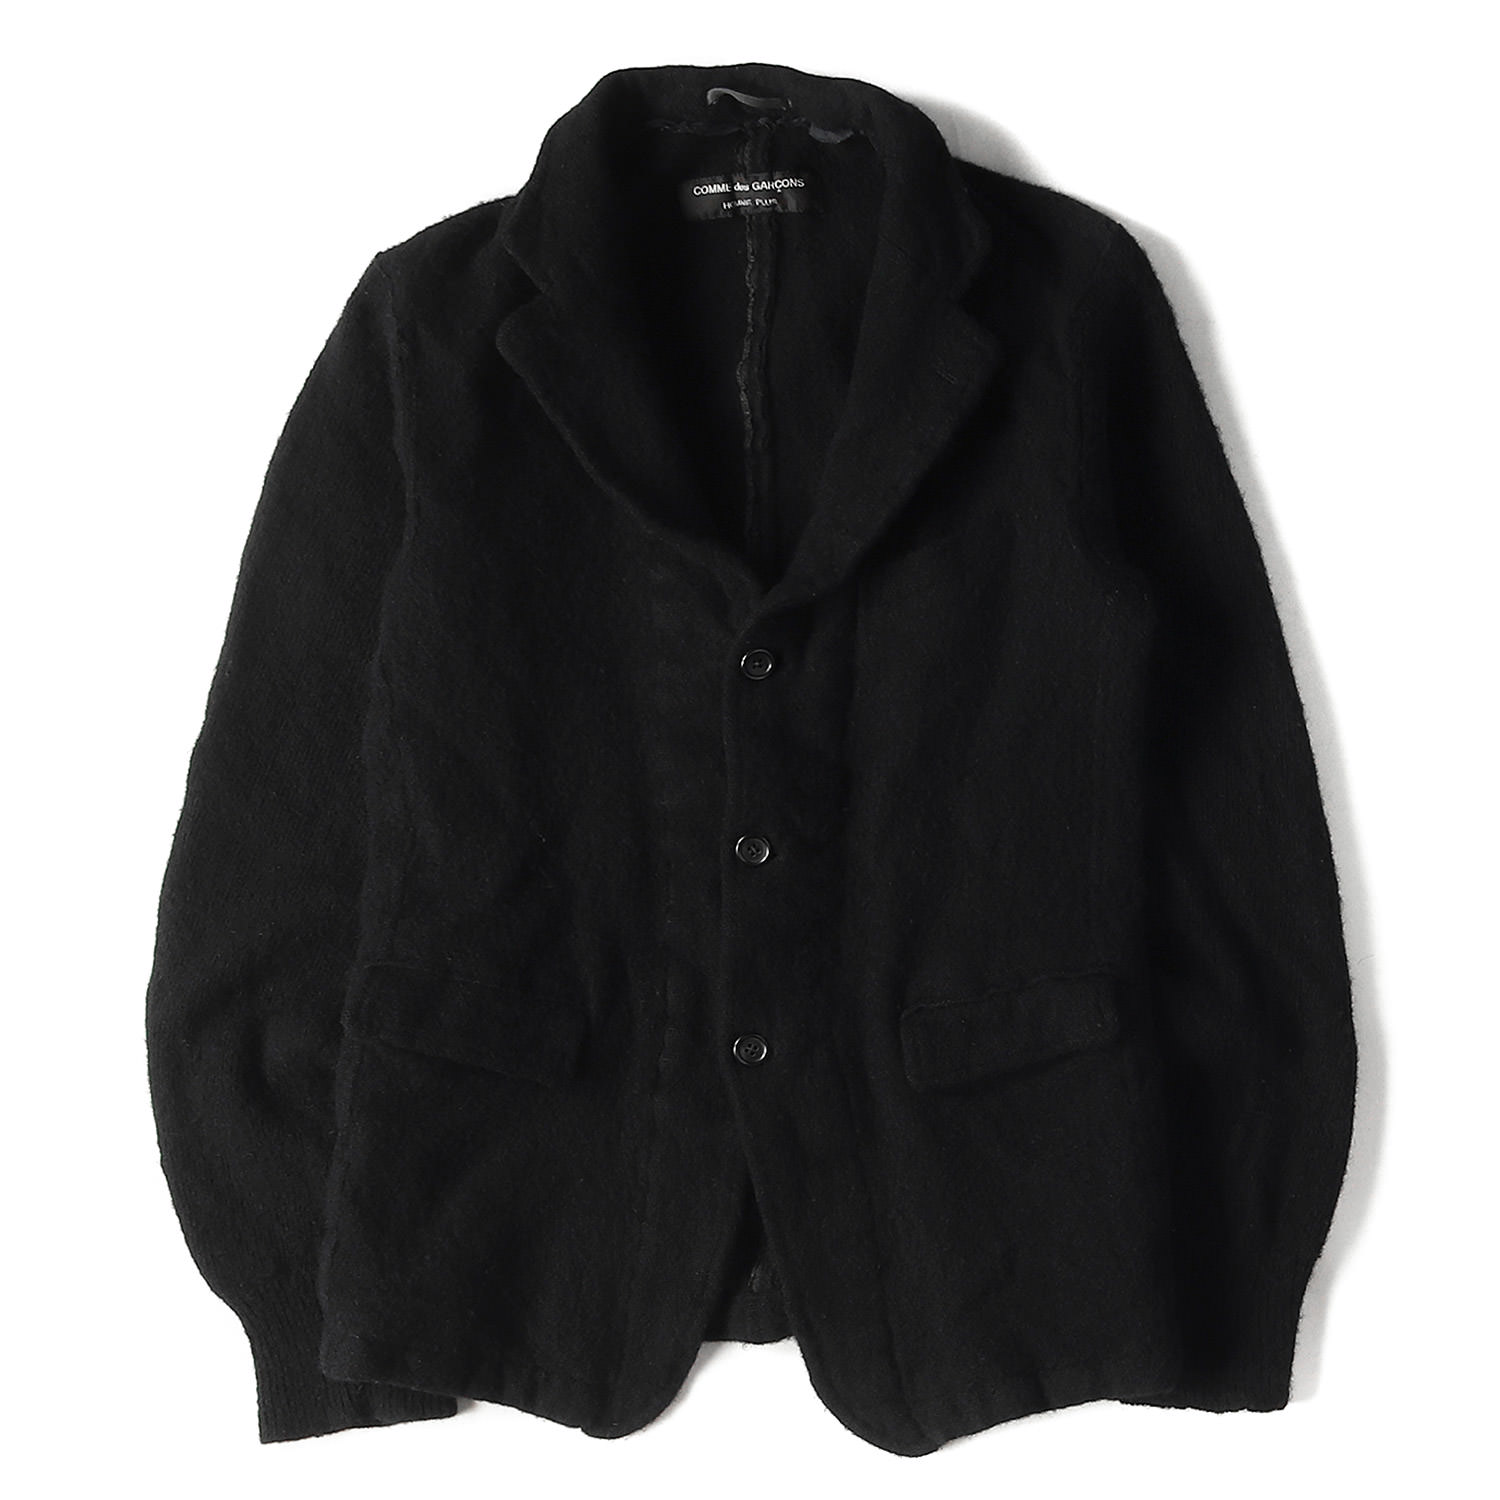 94A/W 縮絨加工ドッキングウール3Bテーラードジャケット COMME des GARCONS HOMME PLUS